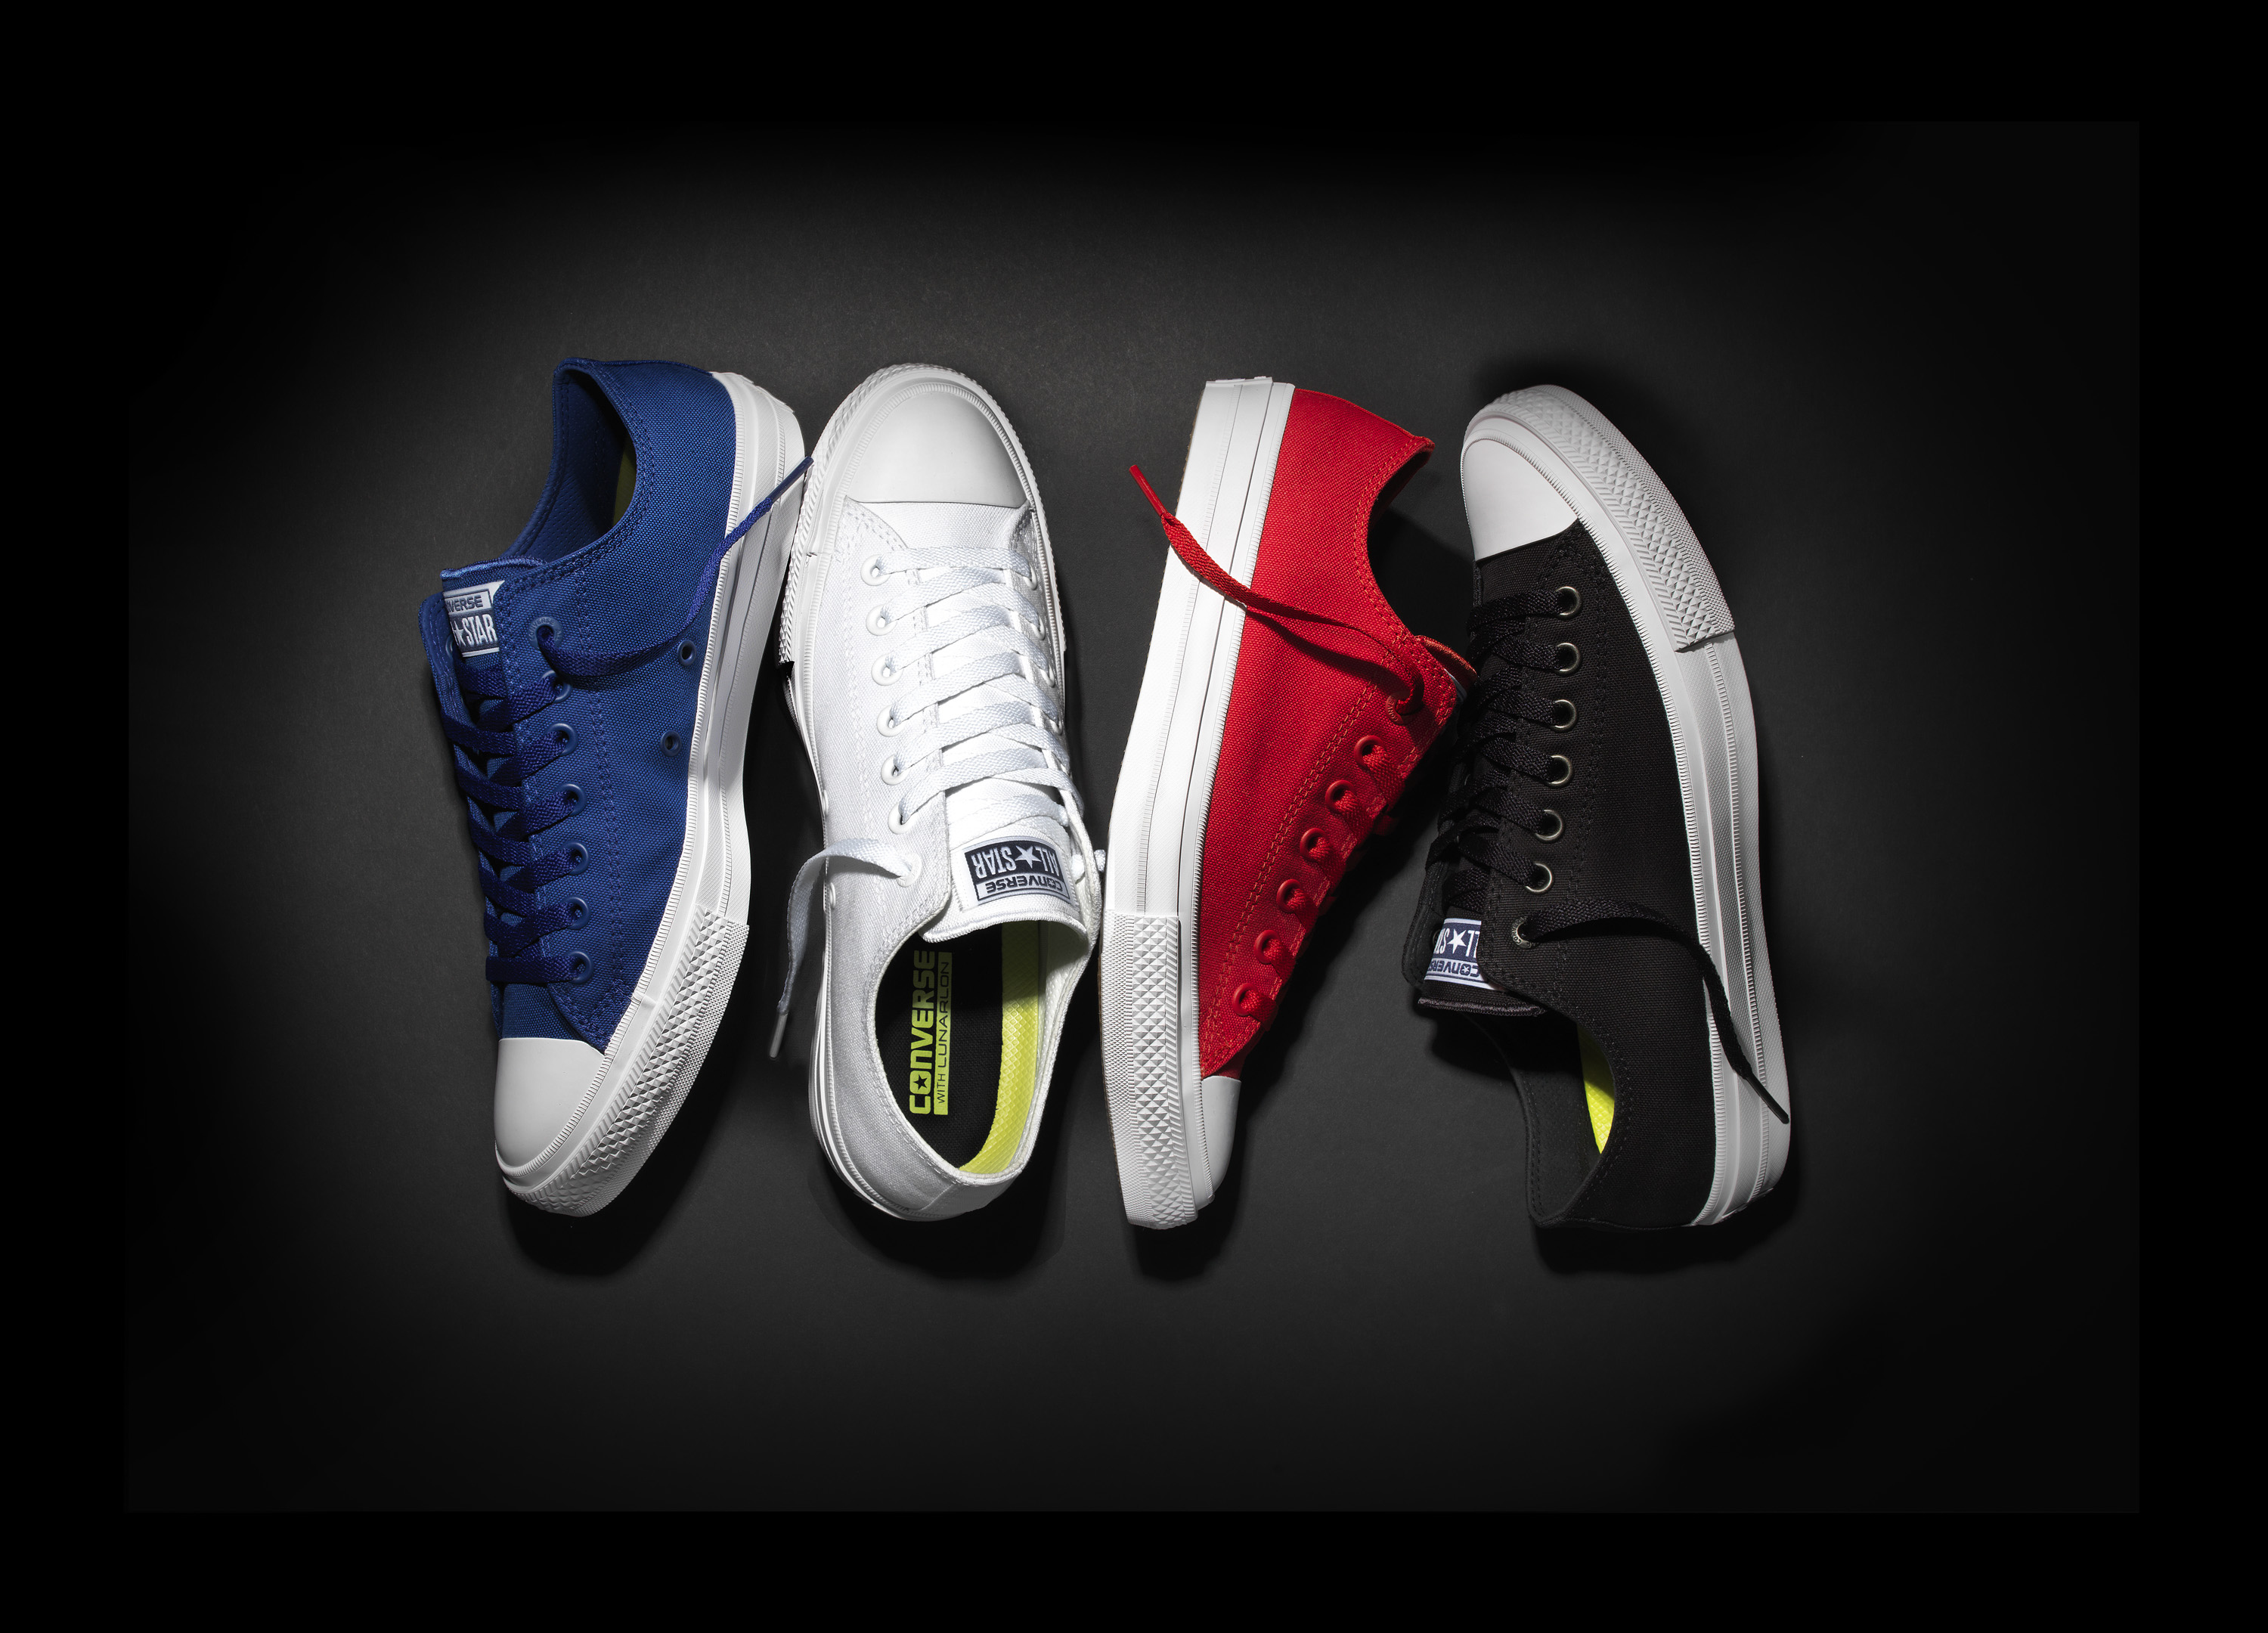 The new Fall 2015 Chuck Taylor All Star II sneaker in blue, white, red and black.